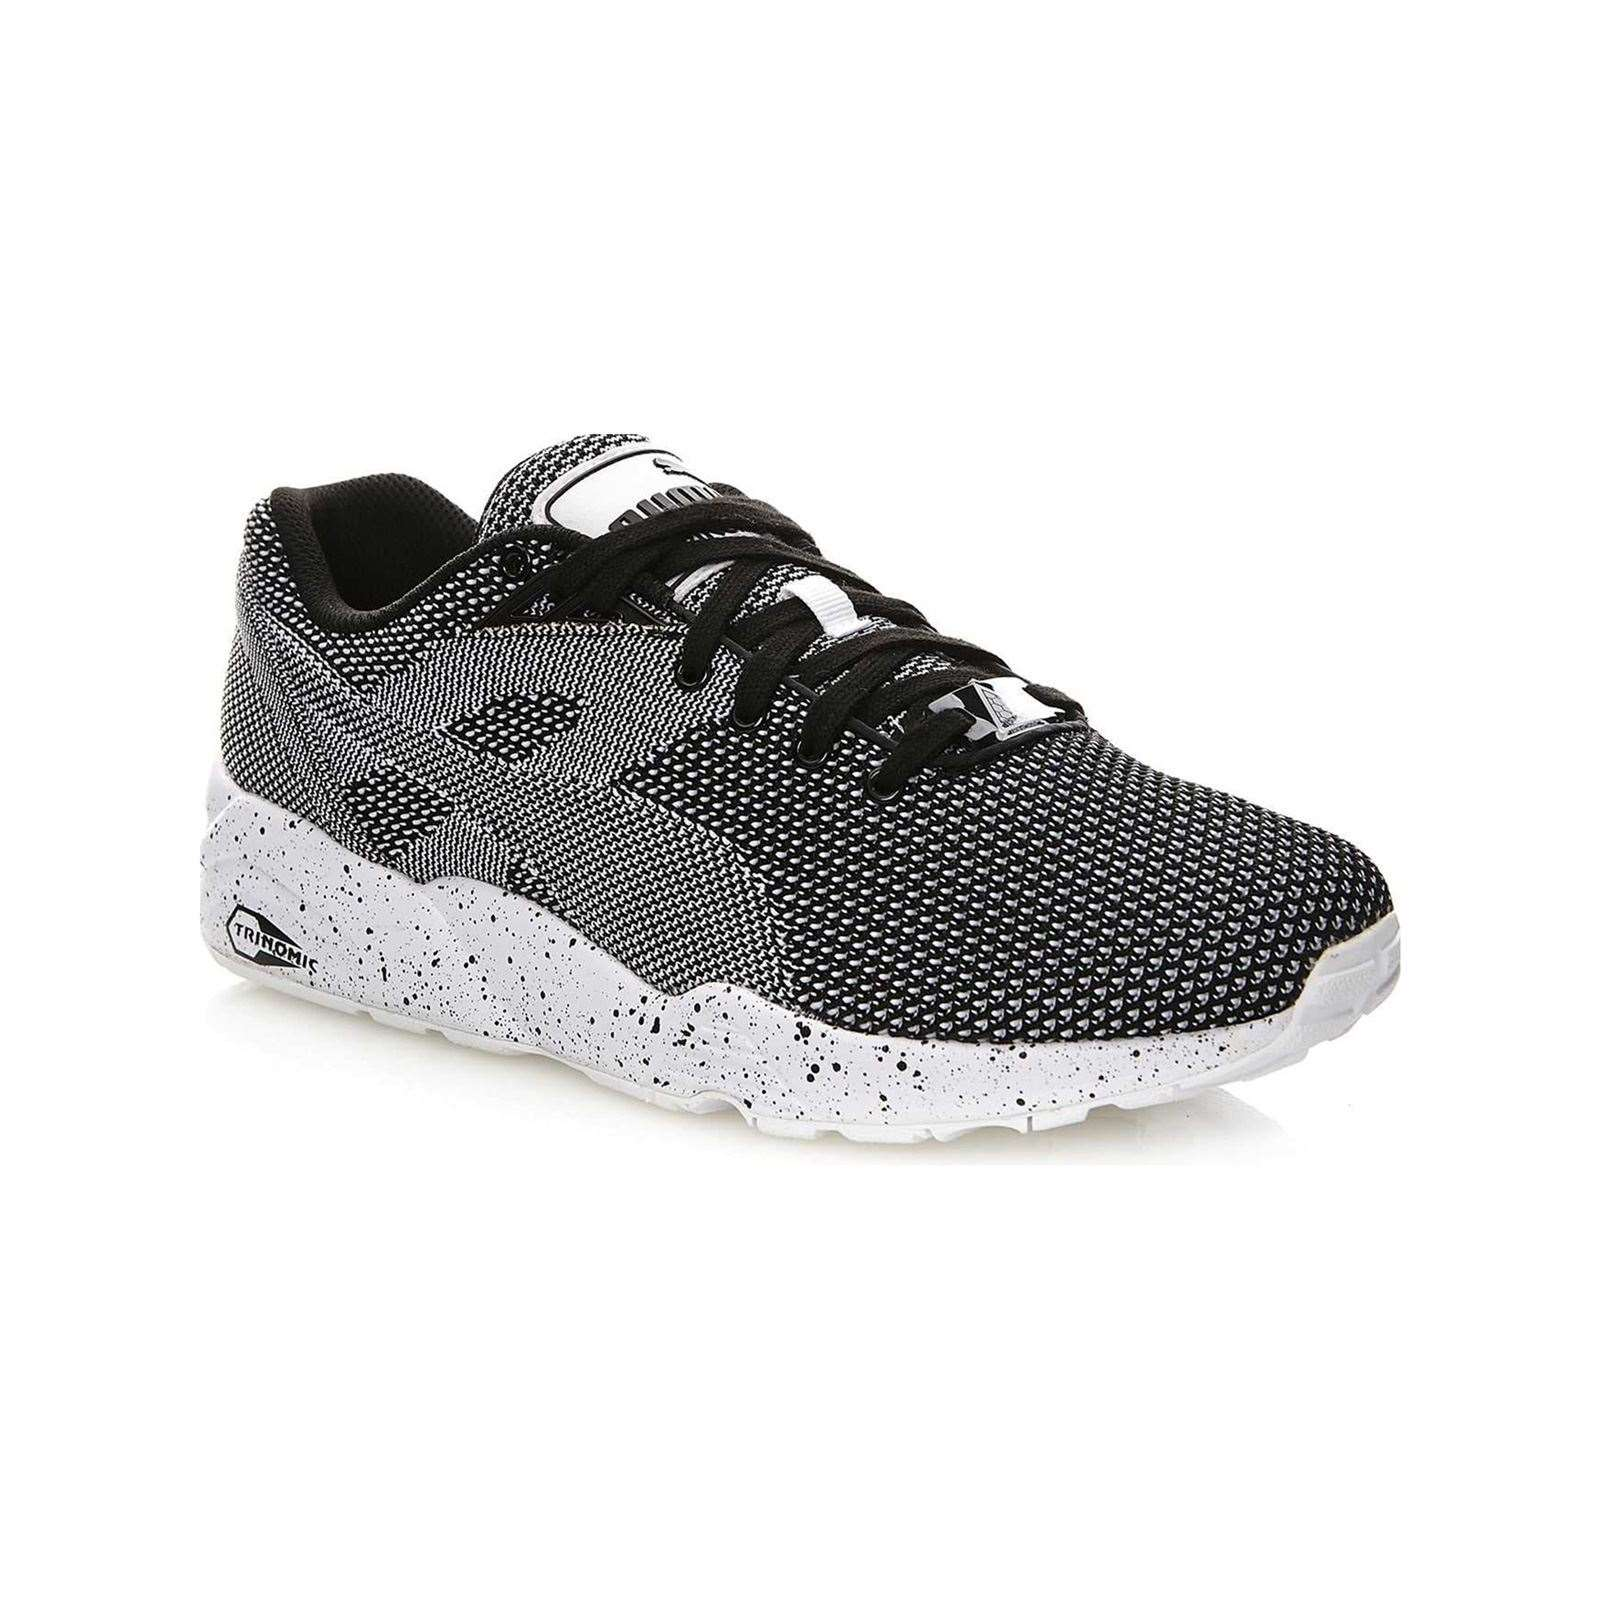 NoirBrandalley Puma Baskets Running Sportstyle Prime jL34A5R